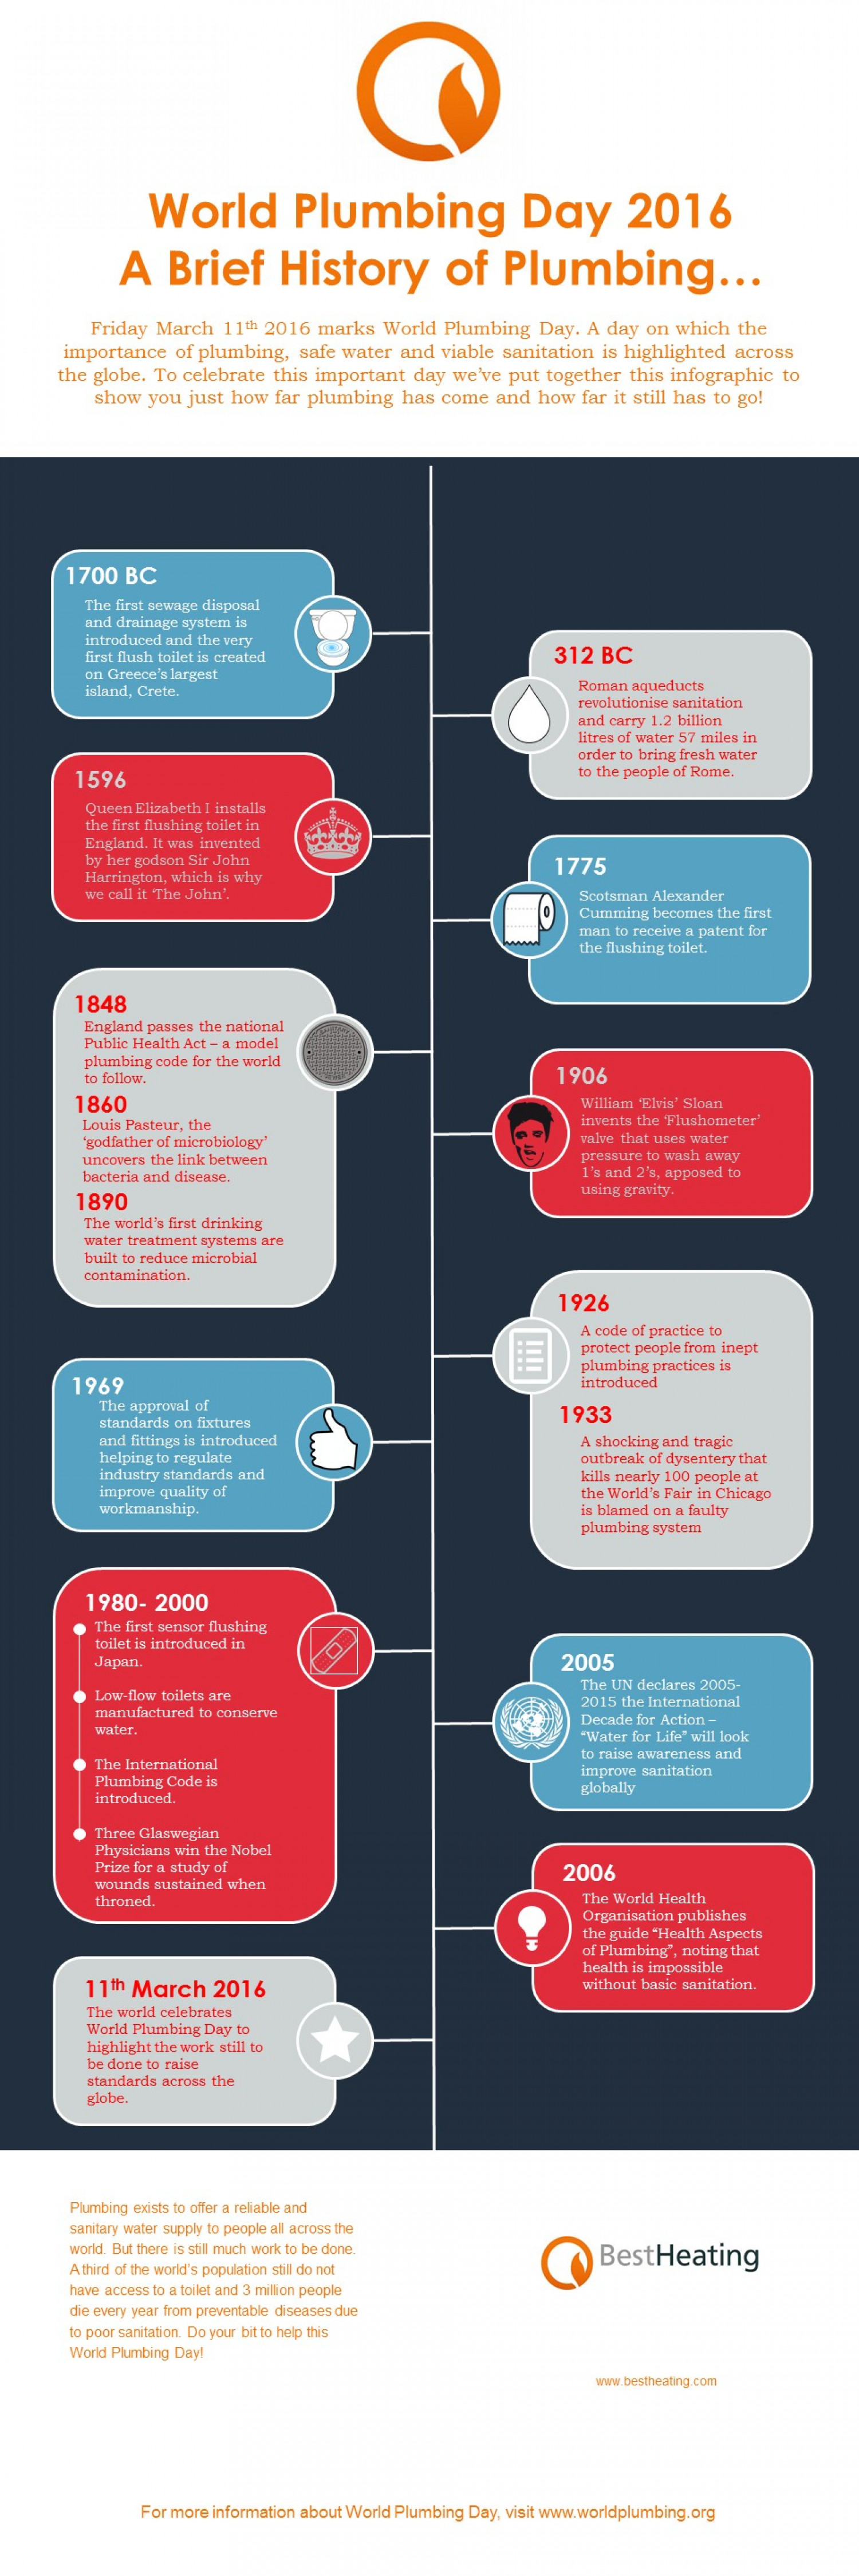 World Plumbing Day 2016 - A Brief History of Plumbing Infographic